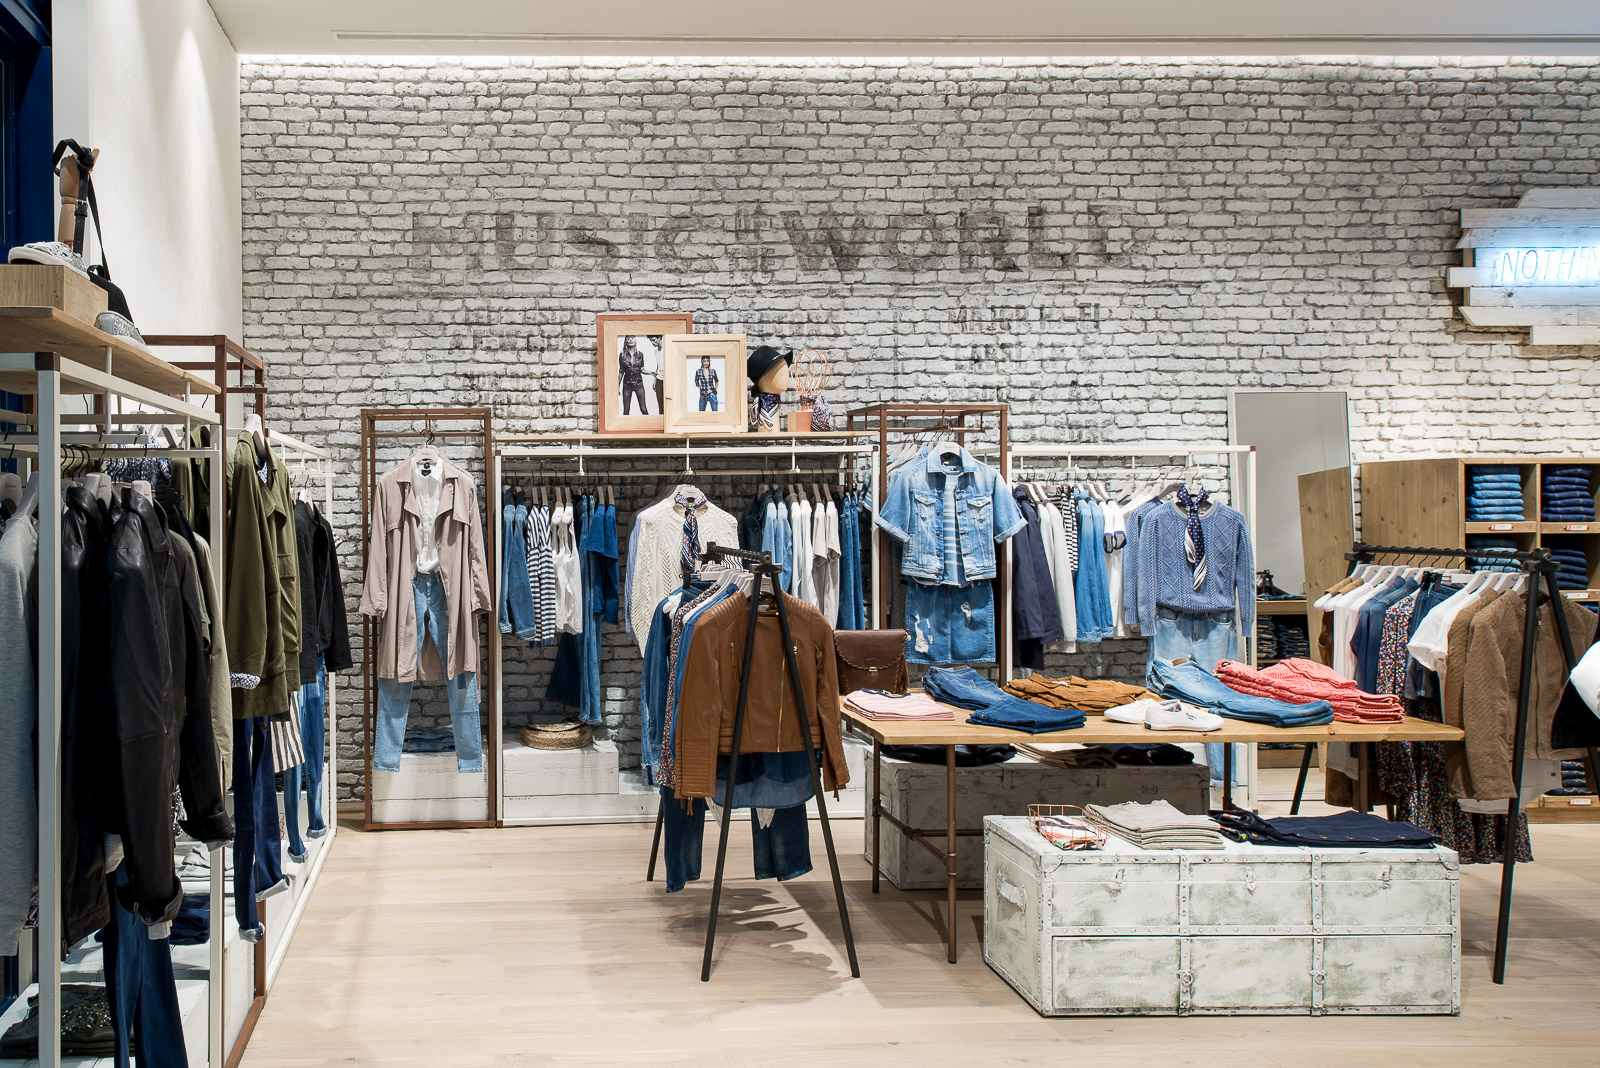 Pepe jeans cc xanad madrid grupowork for Pepe jeans oficinas